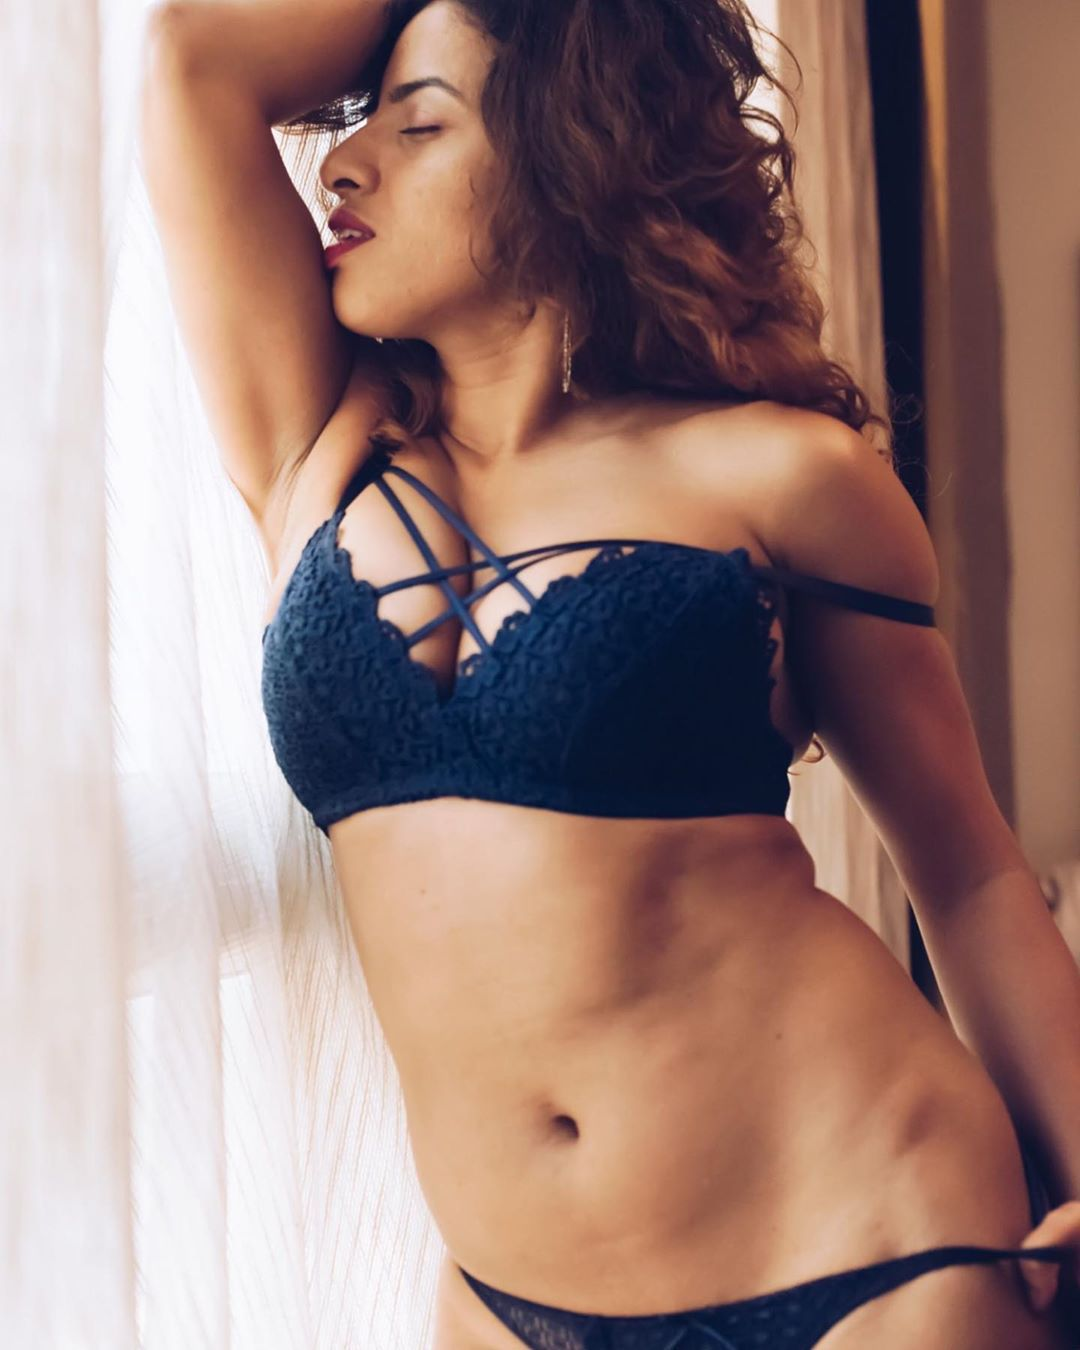 High Profile Chennai Call Girls You Should Not Miss Book Now